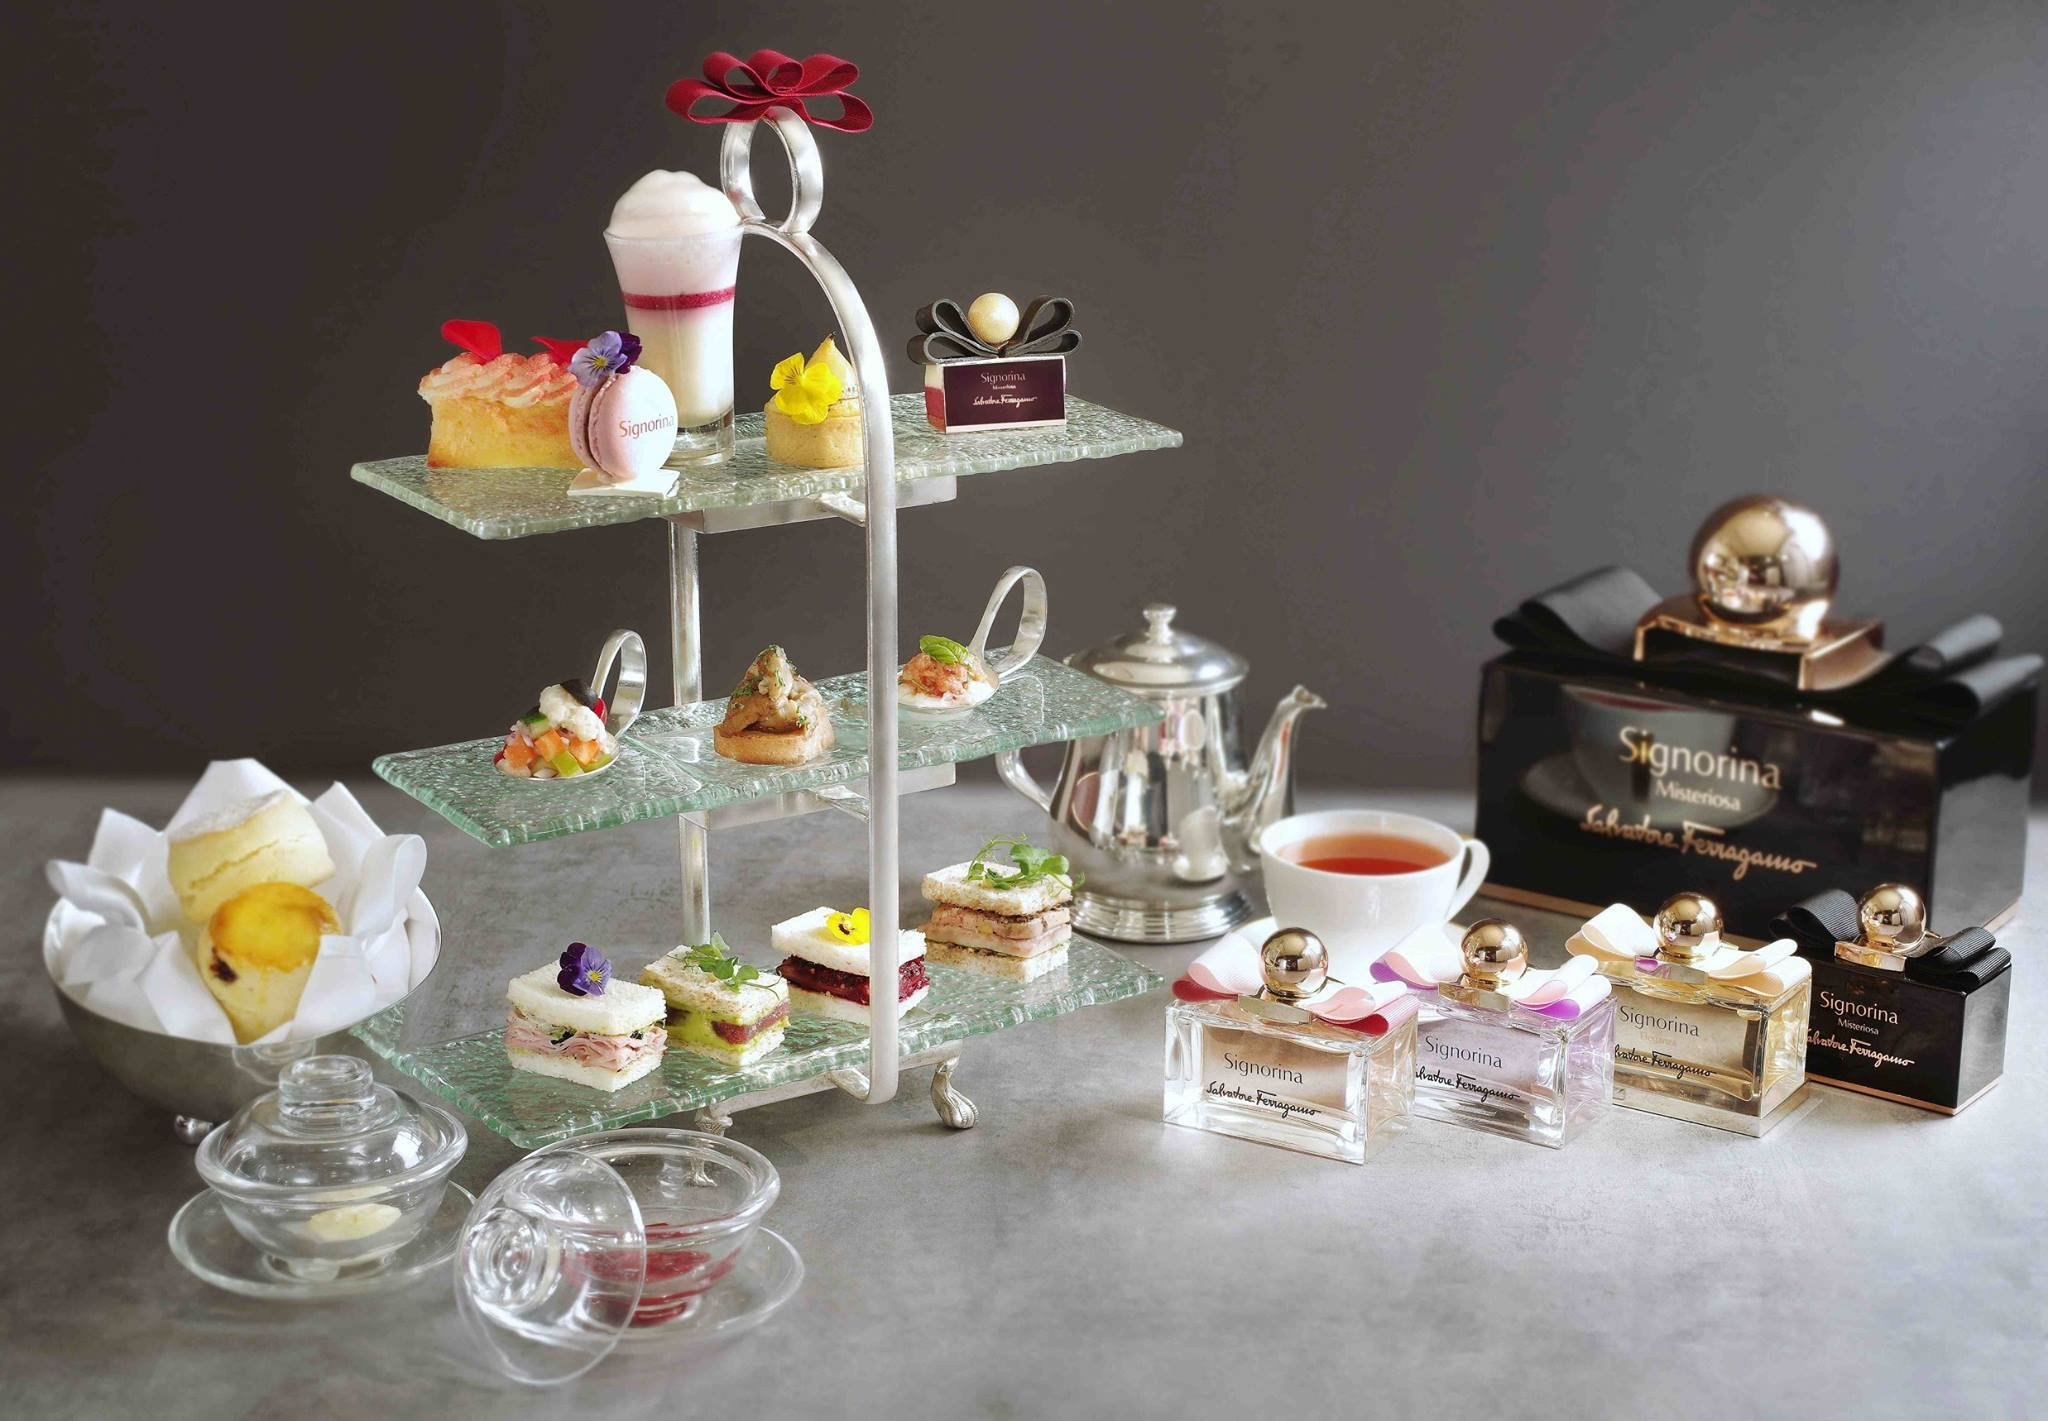 ... Kong Launches Salvatore Ferragamo Fragrance Afternoon Tea - Asia 361